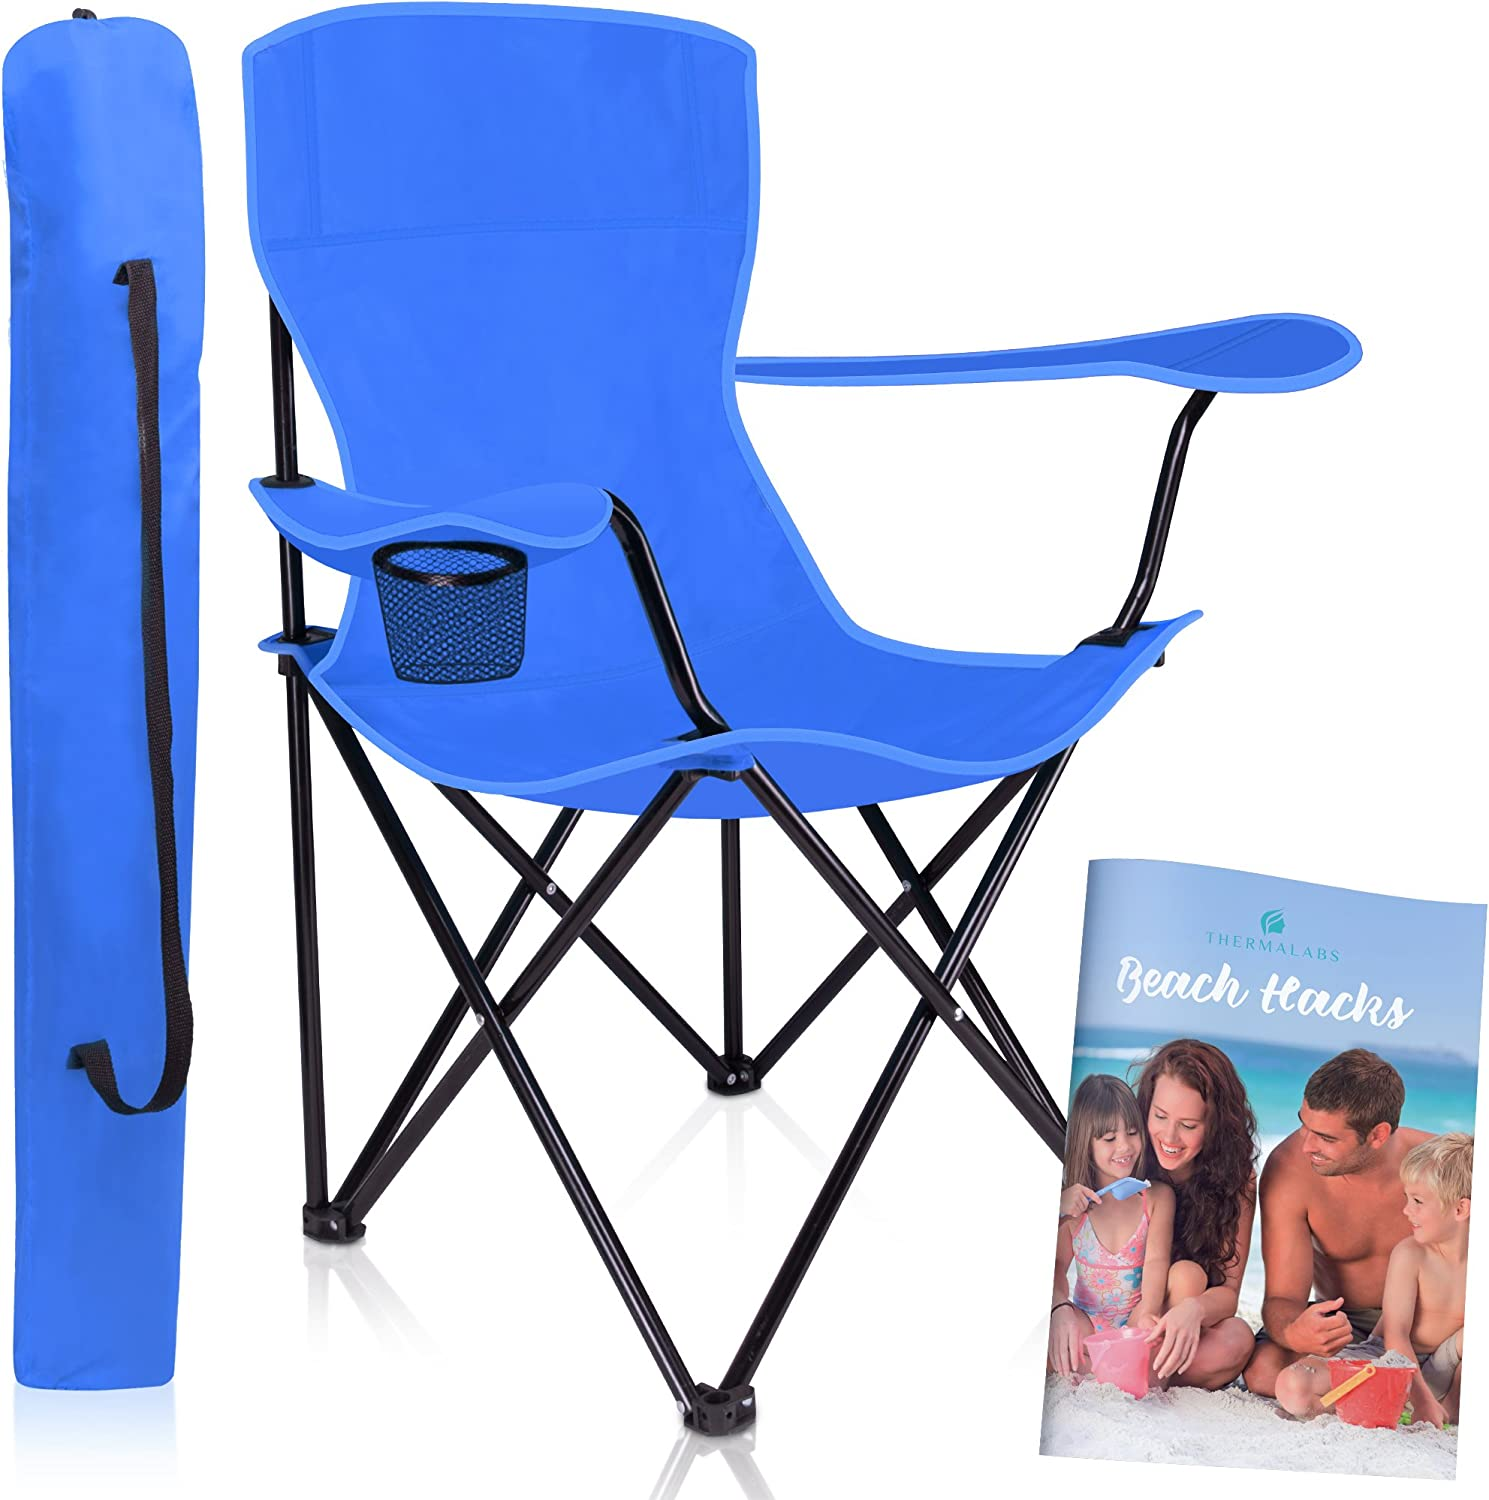 Folding Beach Chair Iris  Enjoy the Park, Garden, and Pool Side. Portable, Stylish Folding Seat with Armrests, Robust and Comfortably Padded. bluee